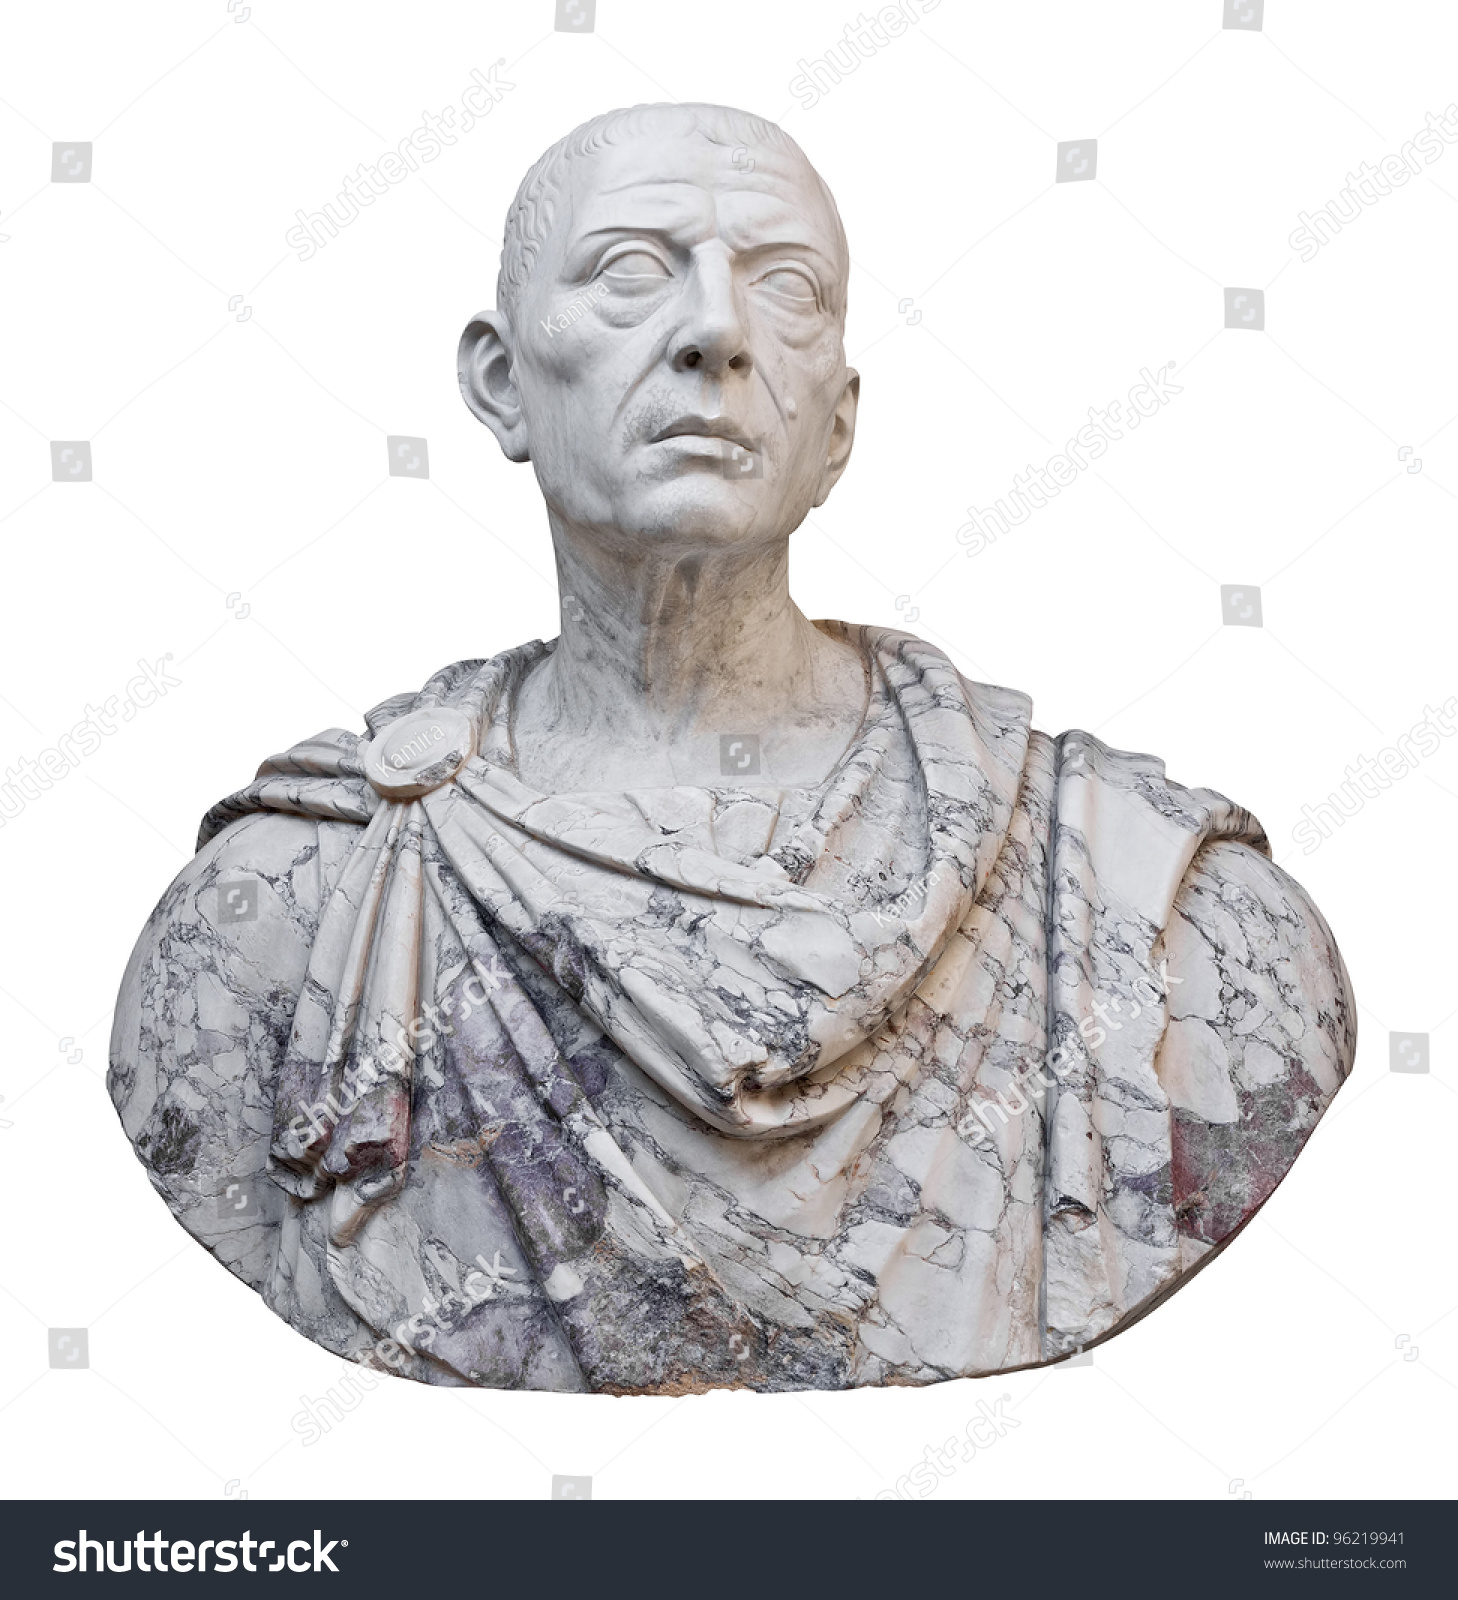 Ancient Mable Statue Of The Roman Emperor Julius Caesar Isolated On A White Background With